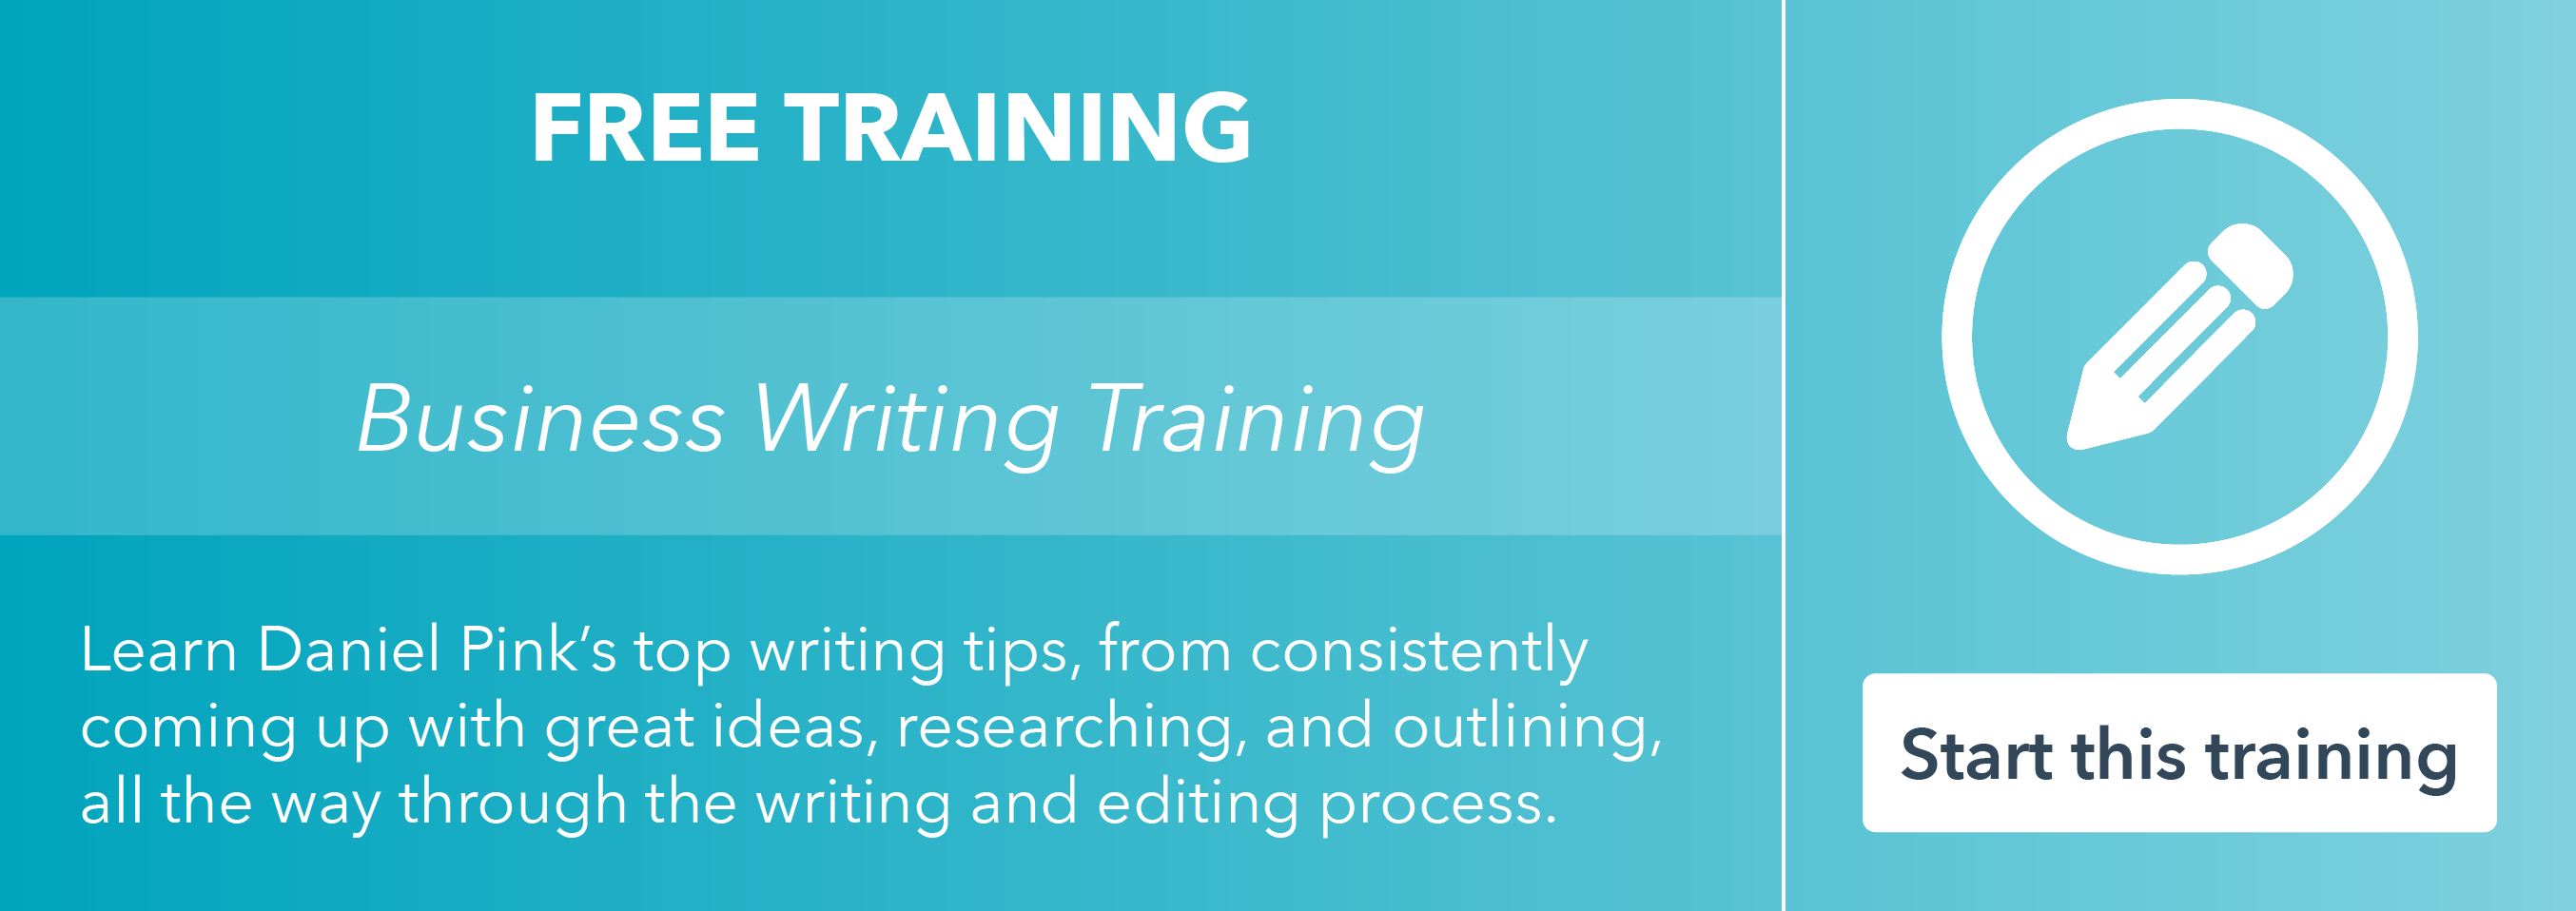 Take the free business writing training by HubSpot Academy